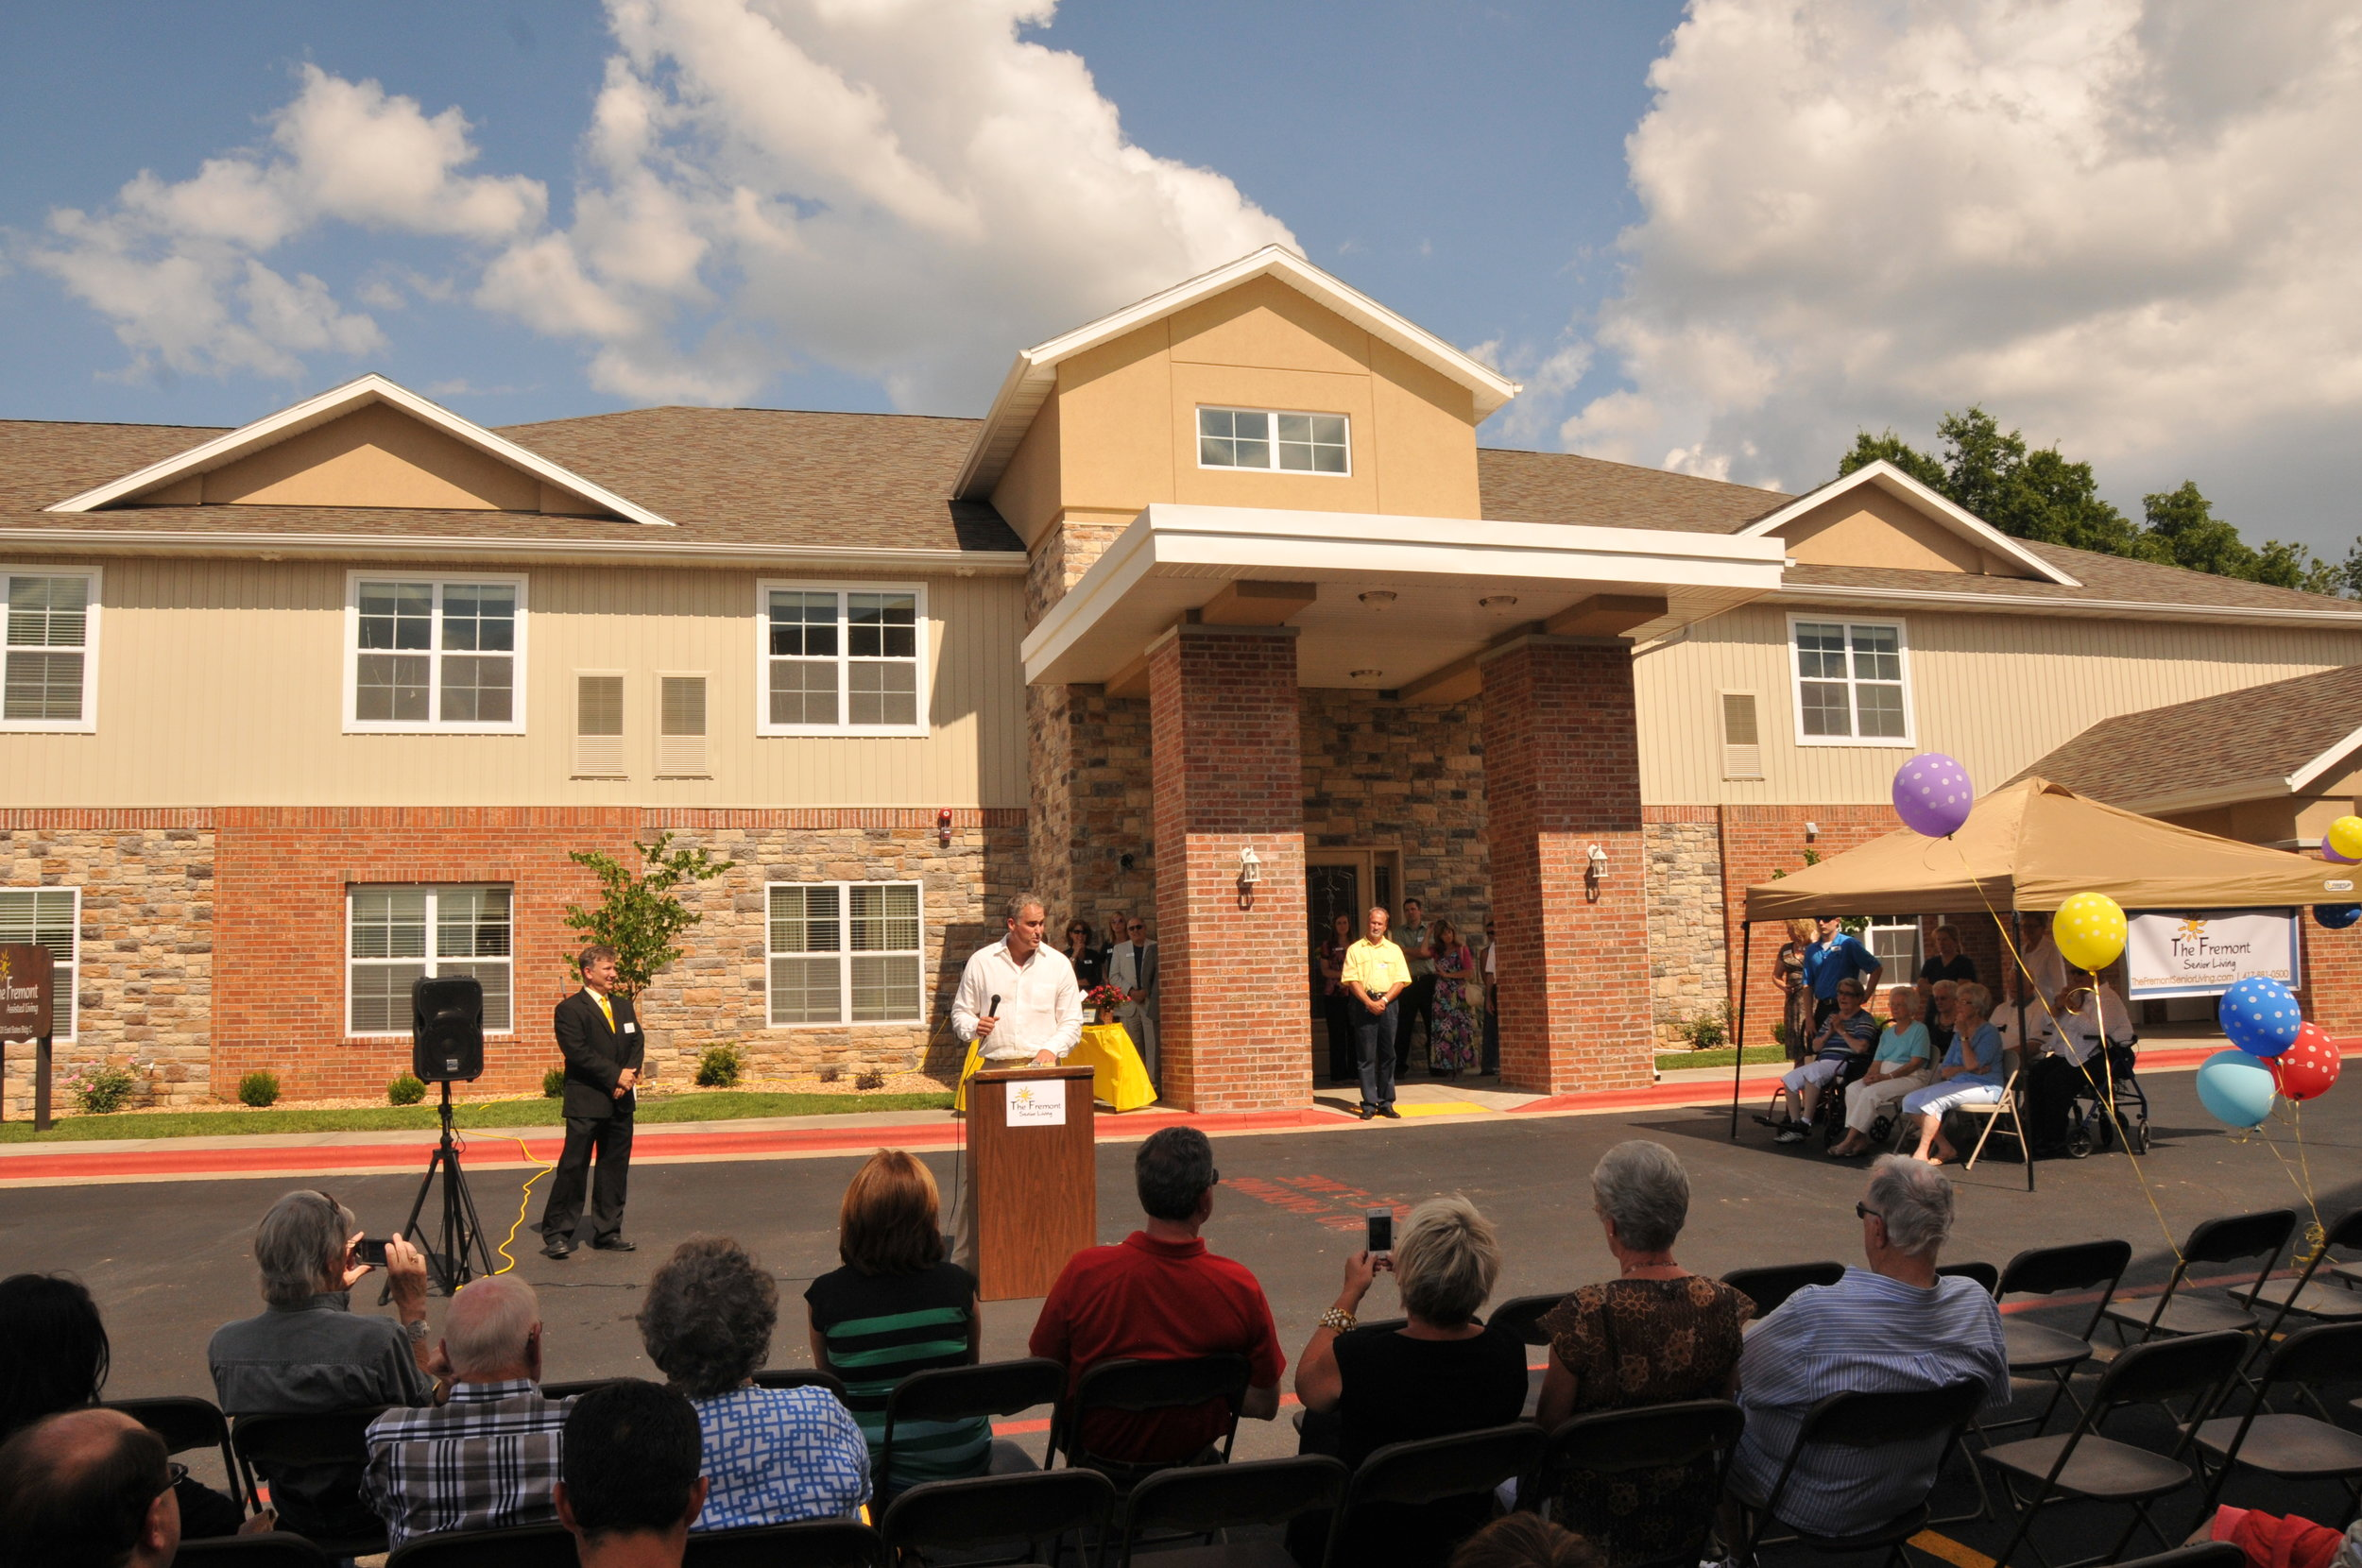 Matt E. Miller speaks to the crowd at the Grand Opening of The Fremont's Memory Care Facility and Assisted Living Facility.